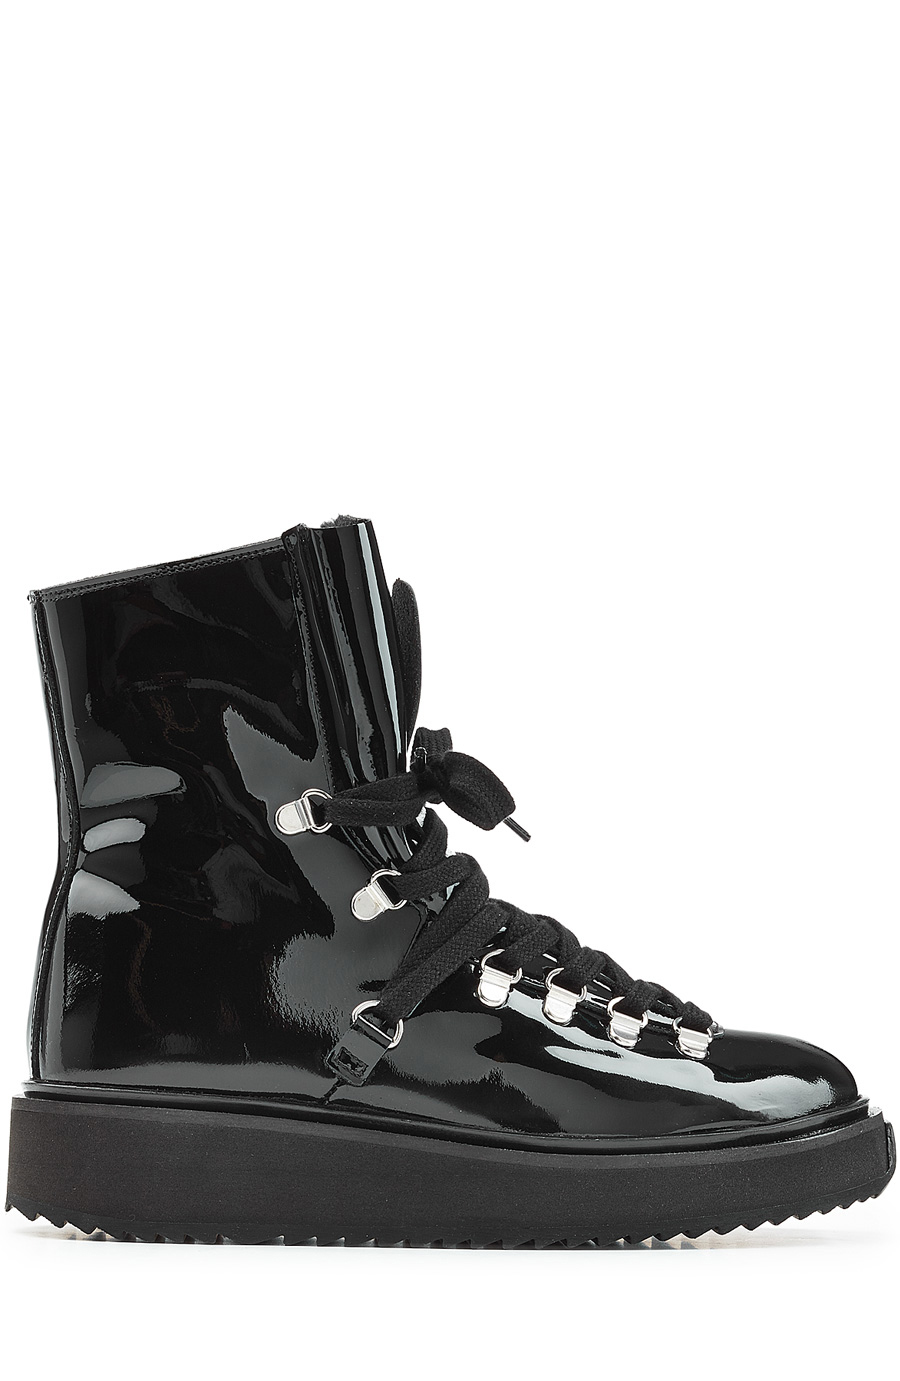 Alaska Boots In Black Patent Leather And Sherling